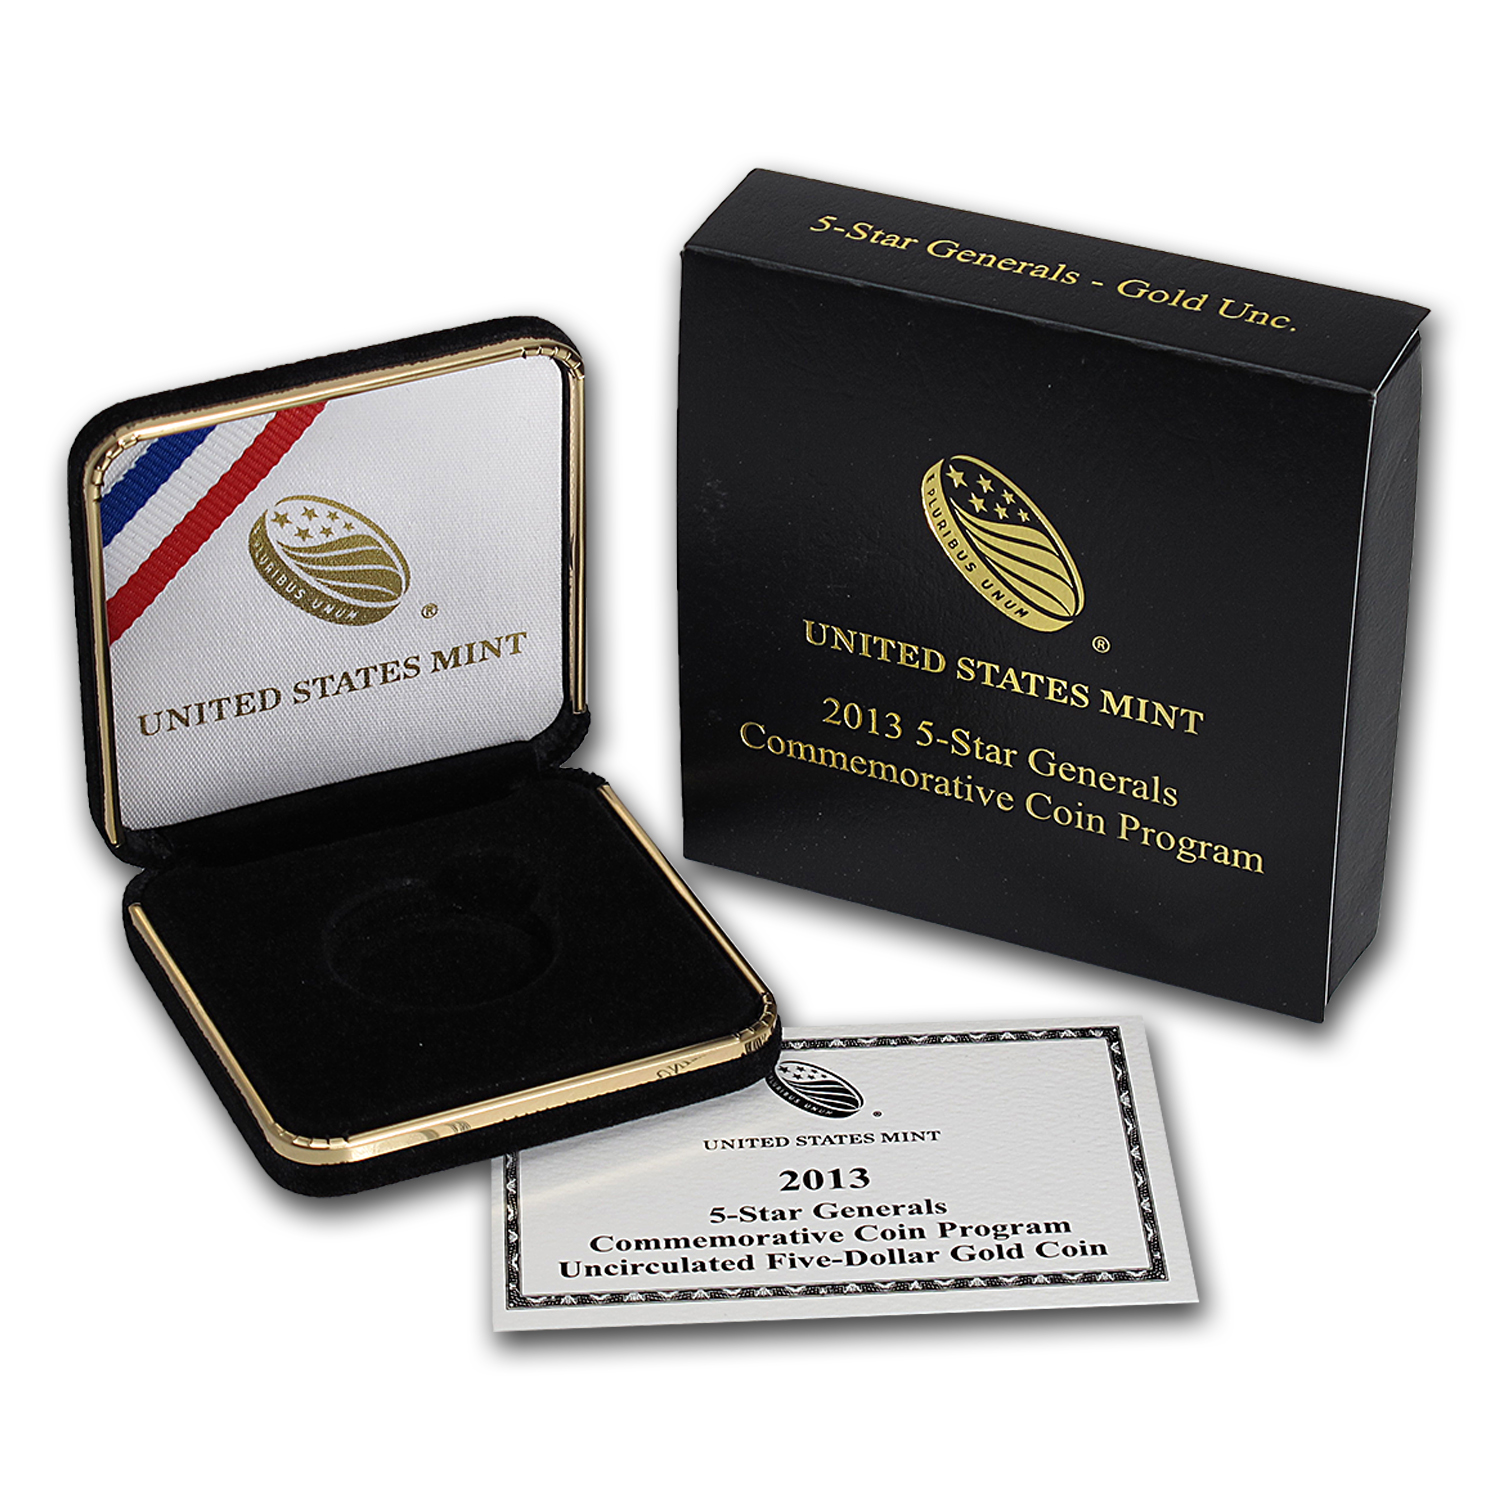 OEM Box & COA - 2013 U.S. Mint 5 Star General Gold Unc. Coin